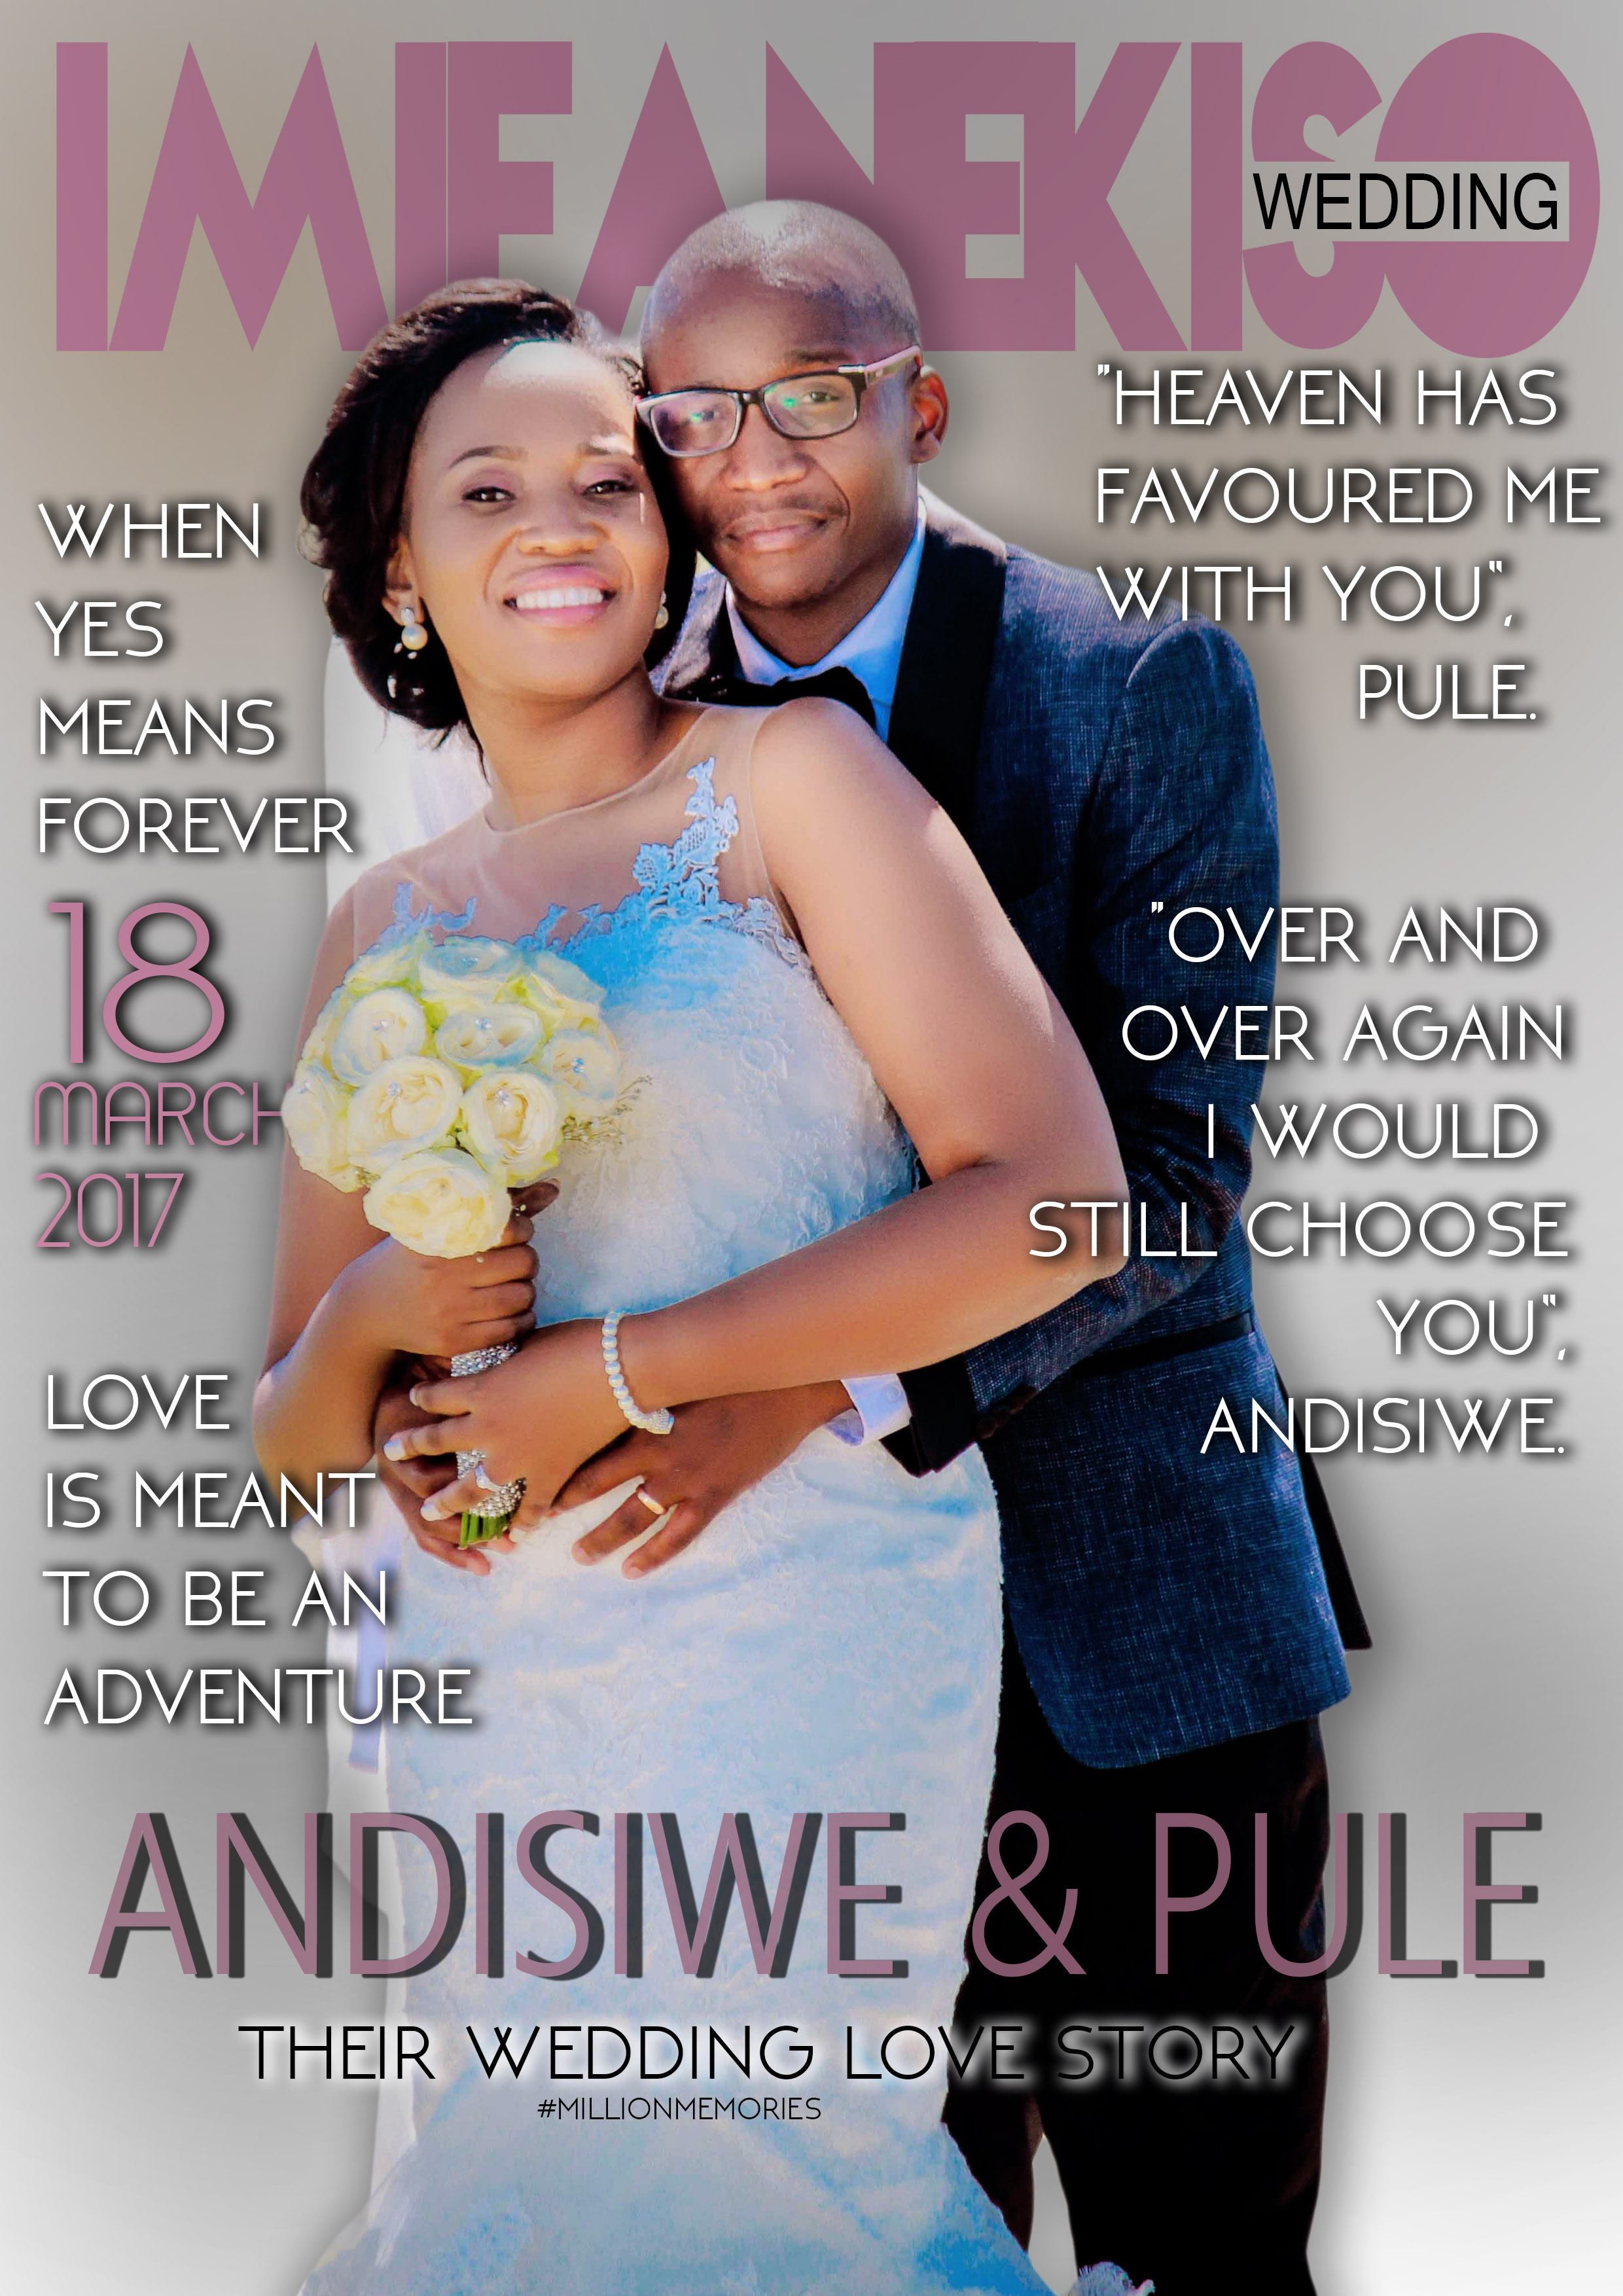 andisiwe and pule